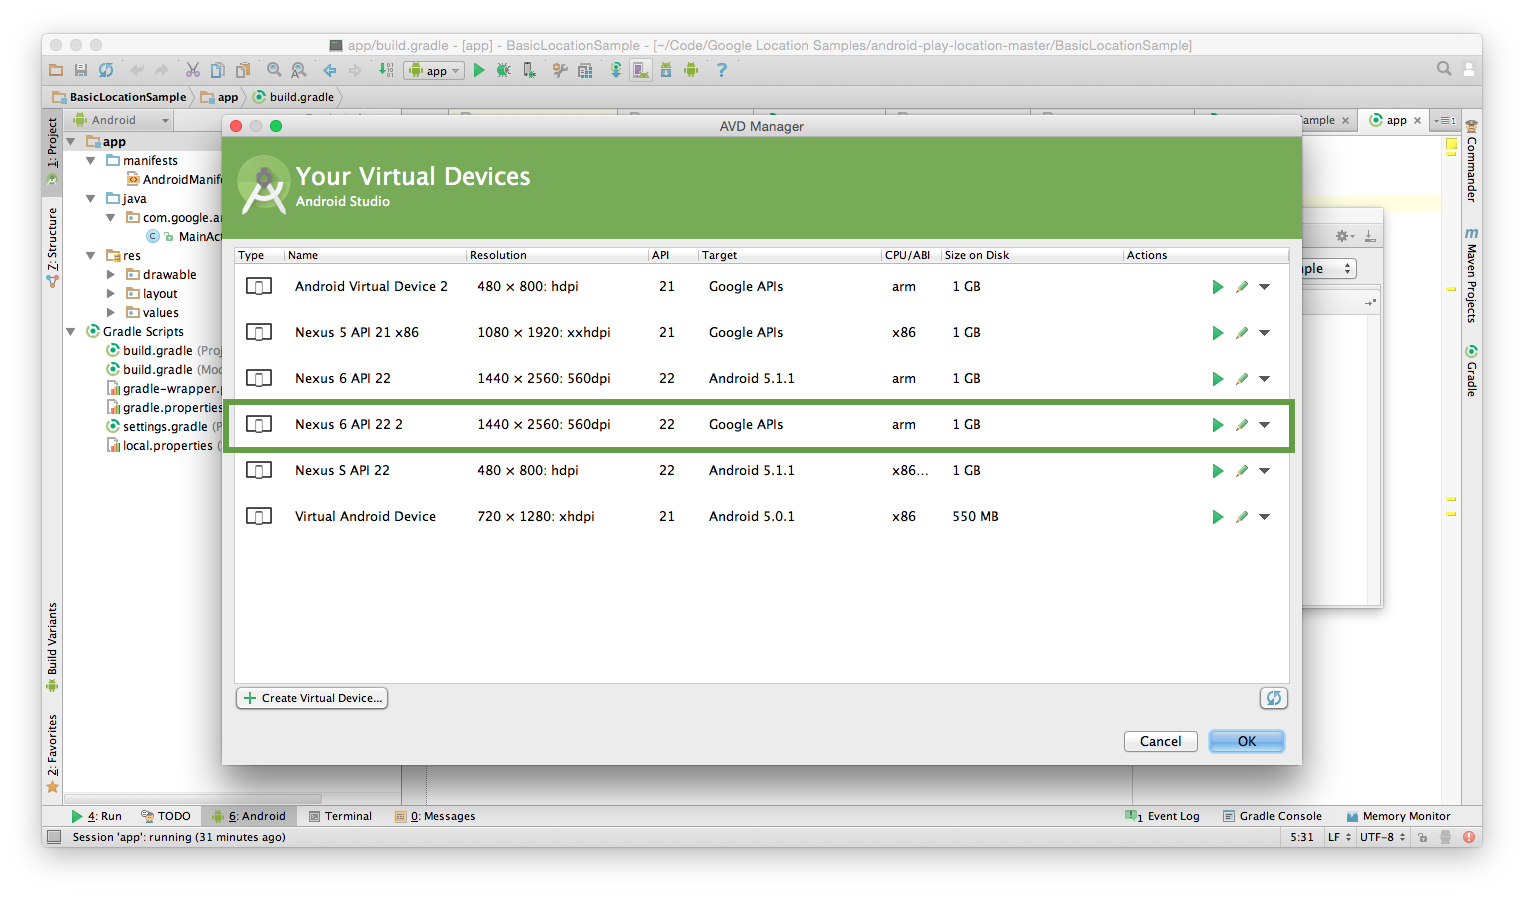 Testing Location Services with Android Virtual Devices